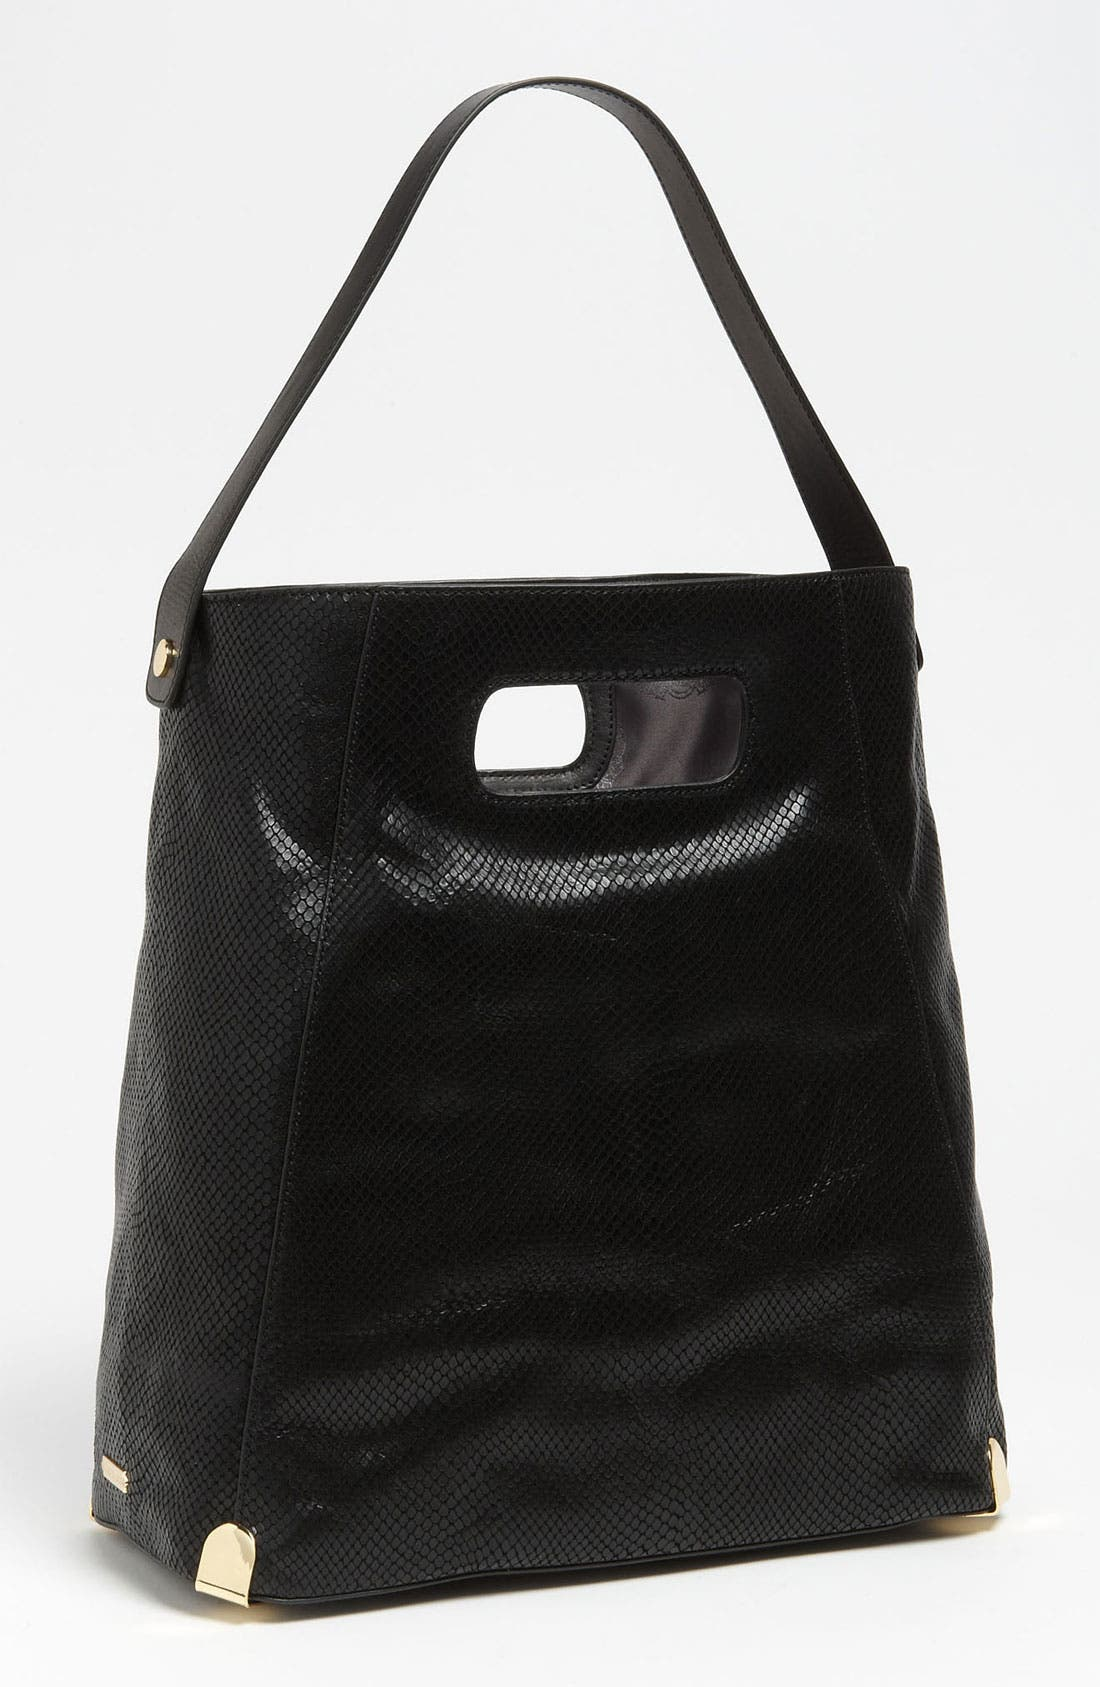 Alternate Image 1 Selected - Vince Camuto 'Alexa' Shoulder Tote